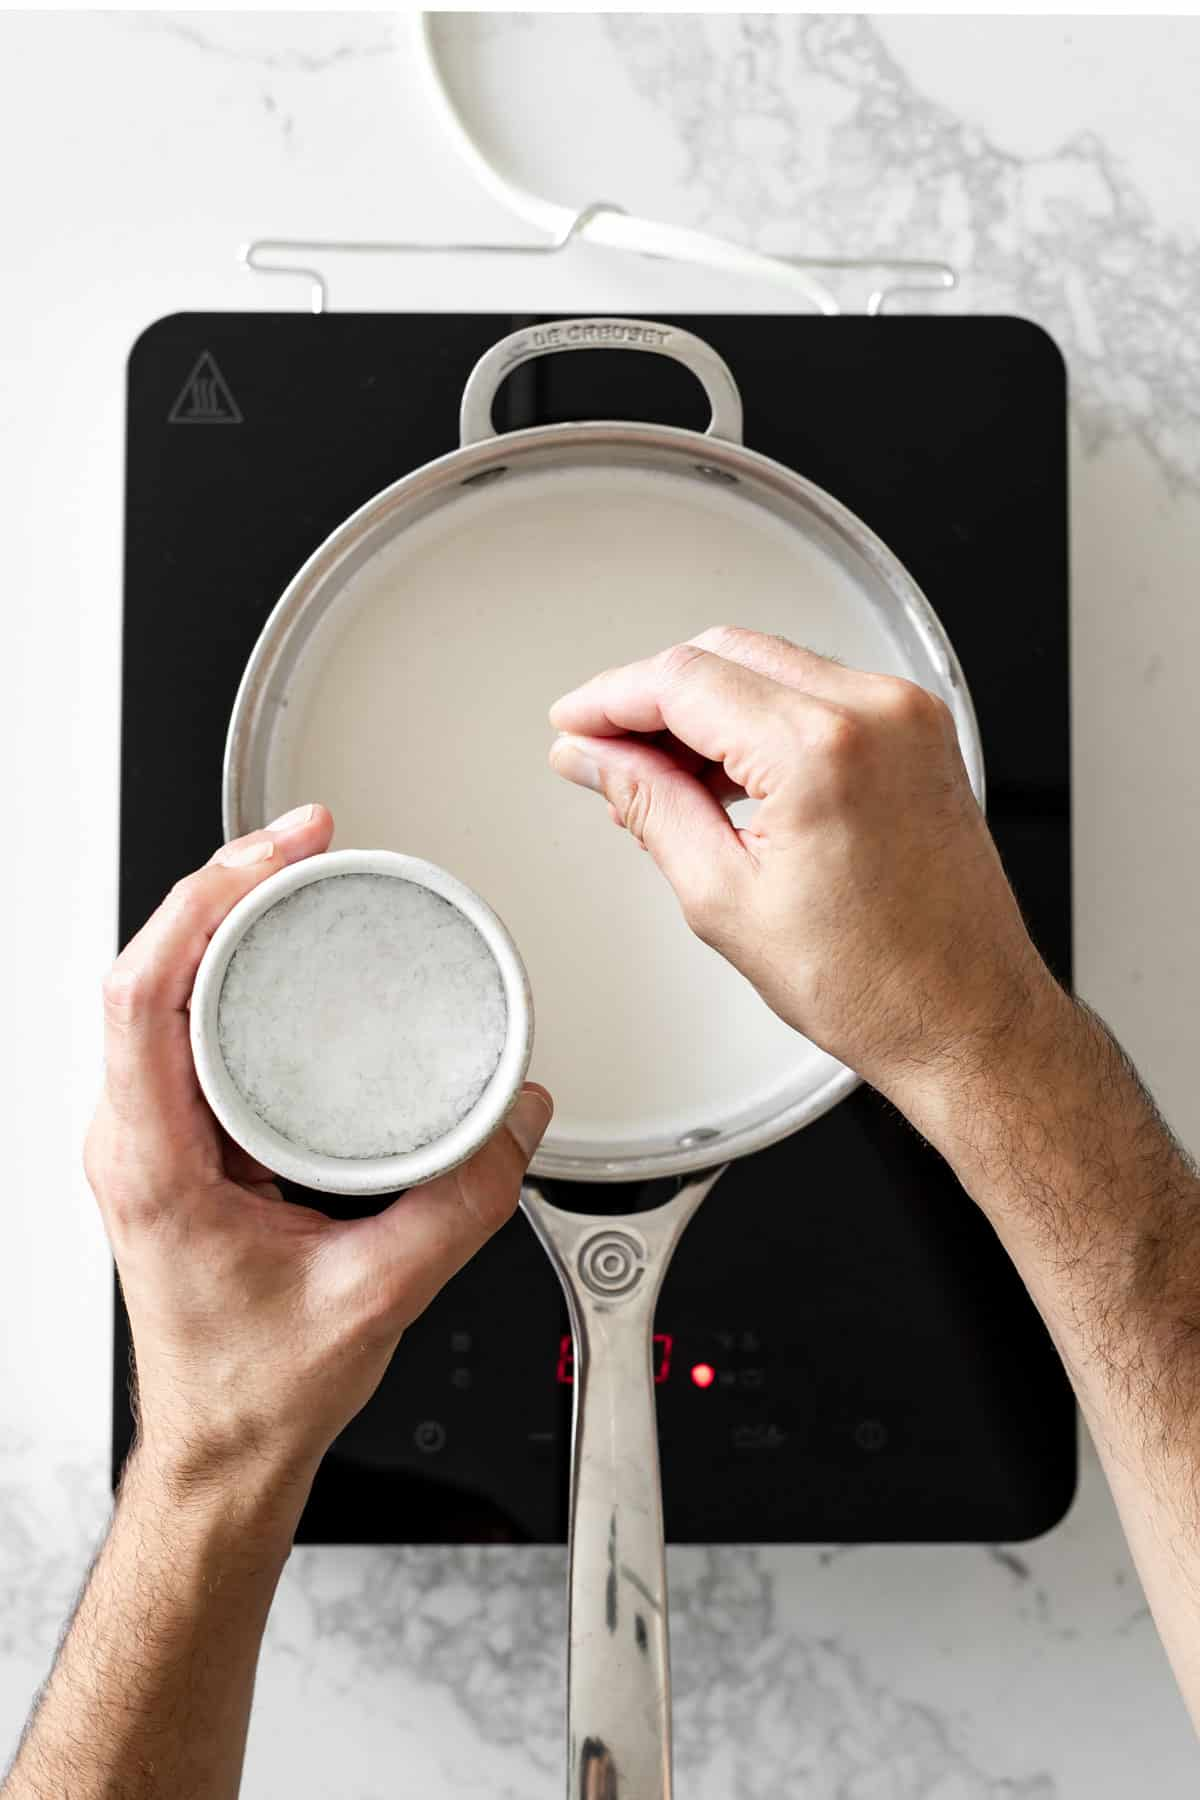 Hand sprinkling salt into a saucepan with milk in it